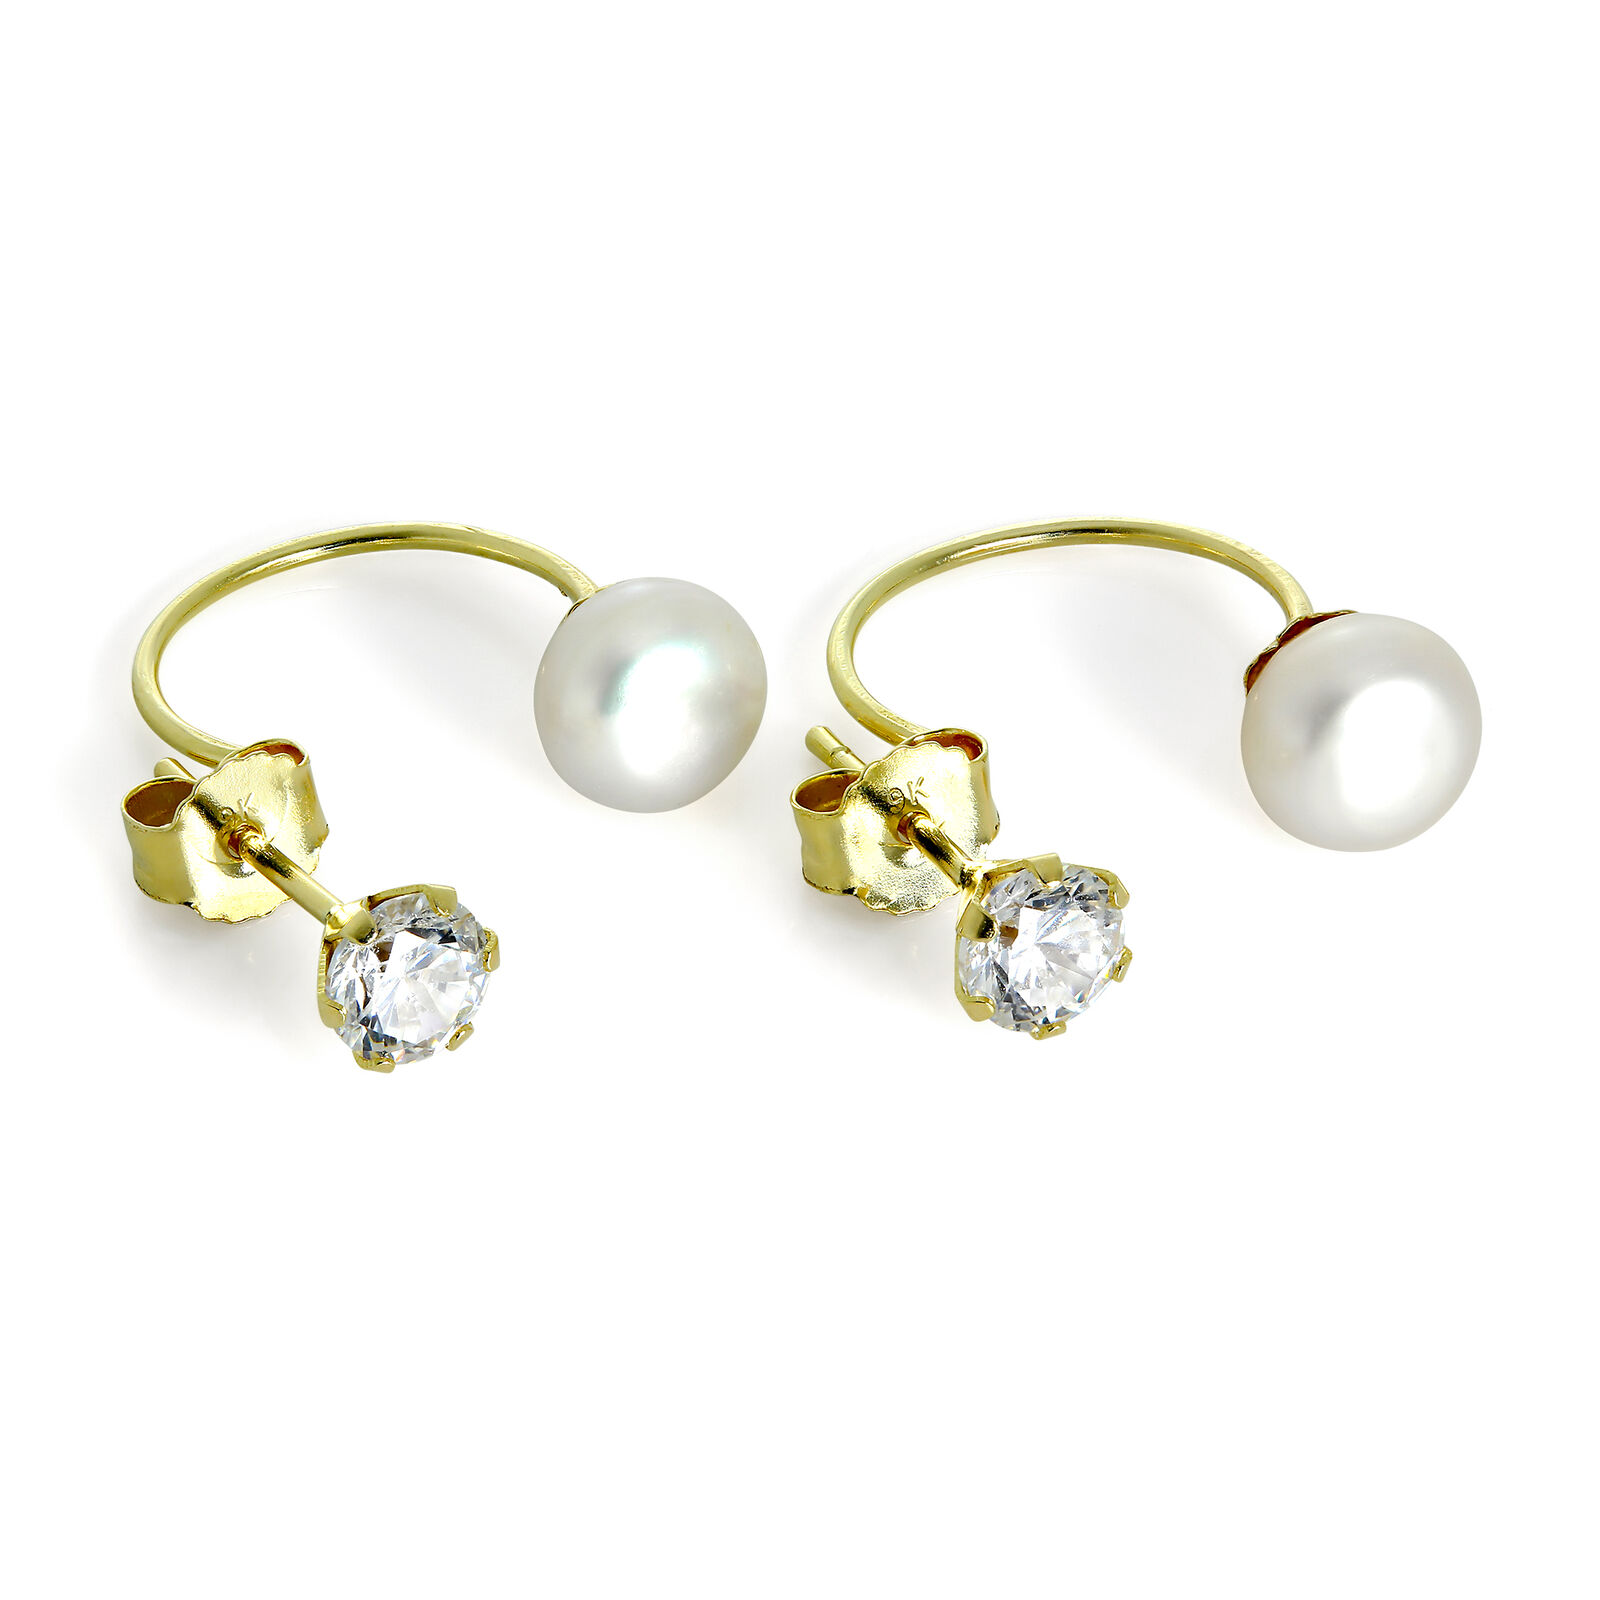 9ct gold 4mm Round CZ Crystal & 6mm Freshwater Pearl Double Stud Earrings